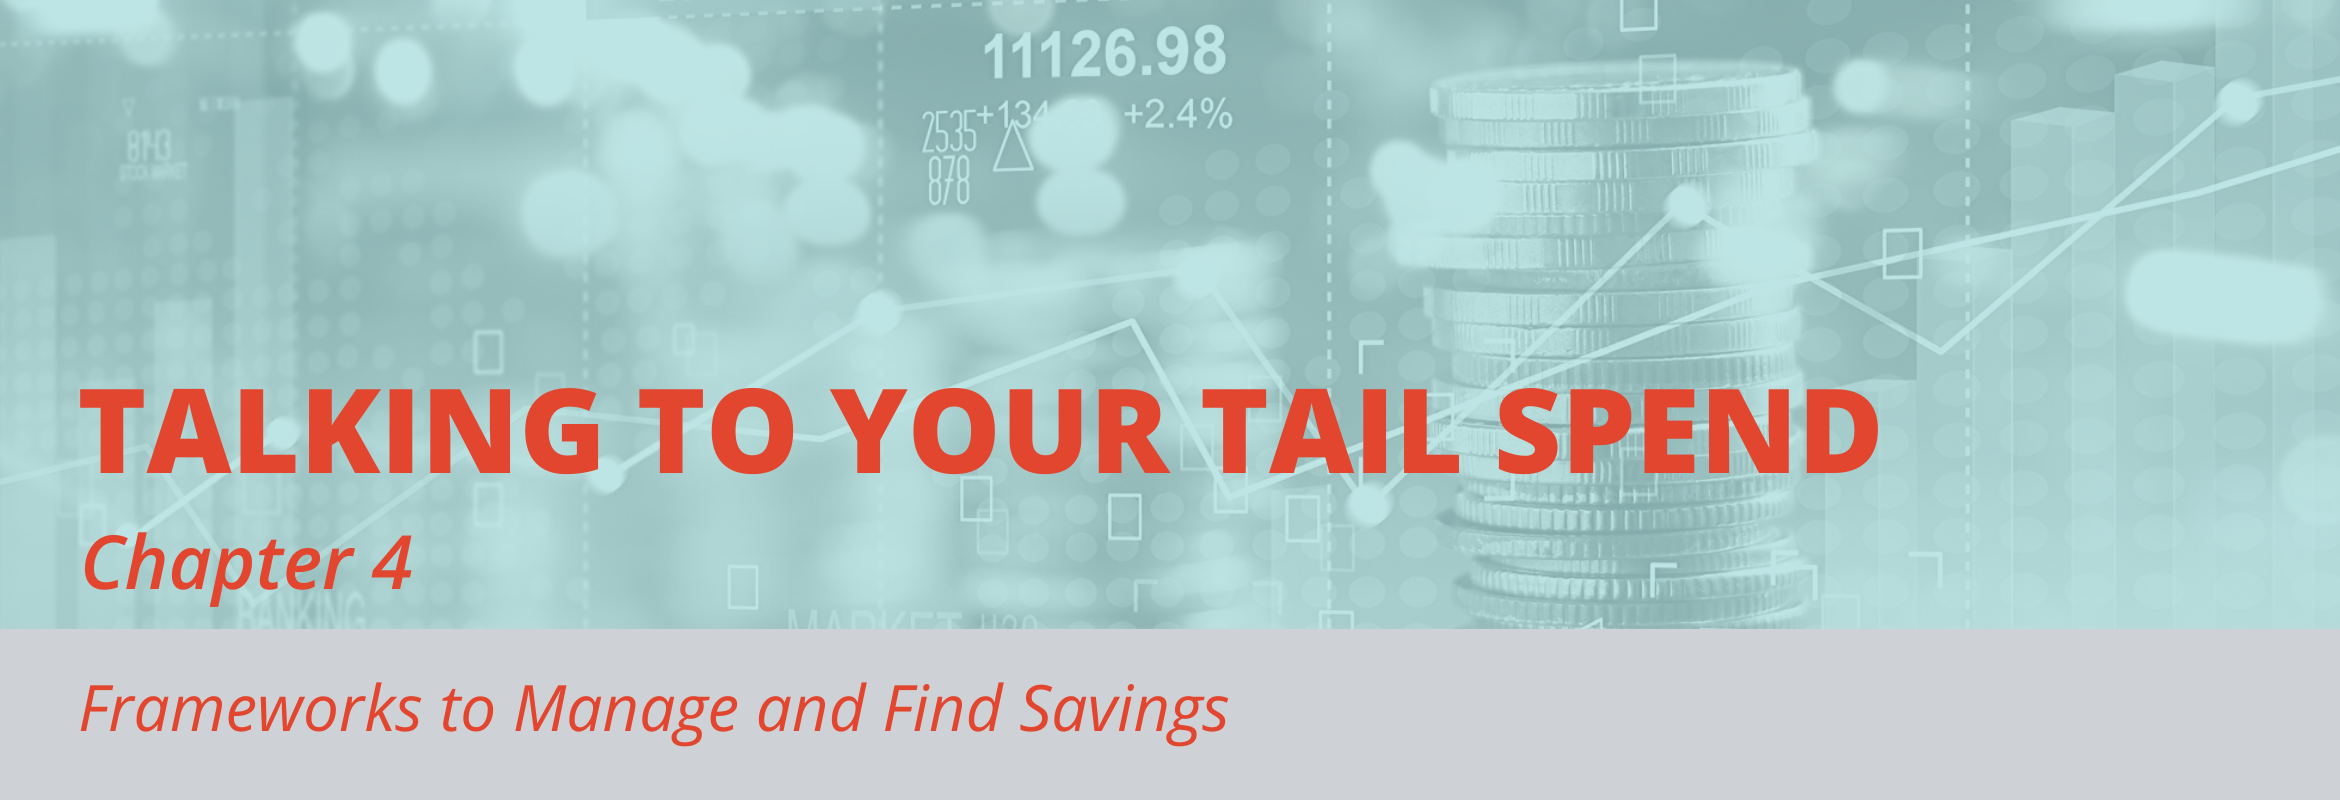 Find savings and learn how to build a strategic sourcing framework to help you manage tail spend.